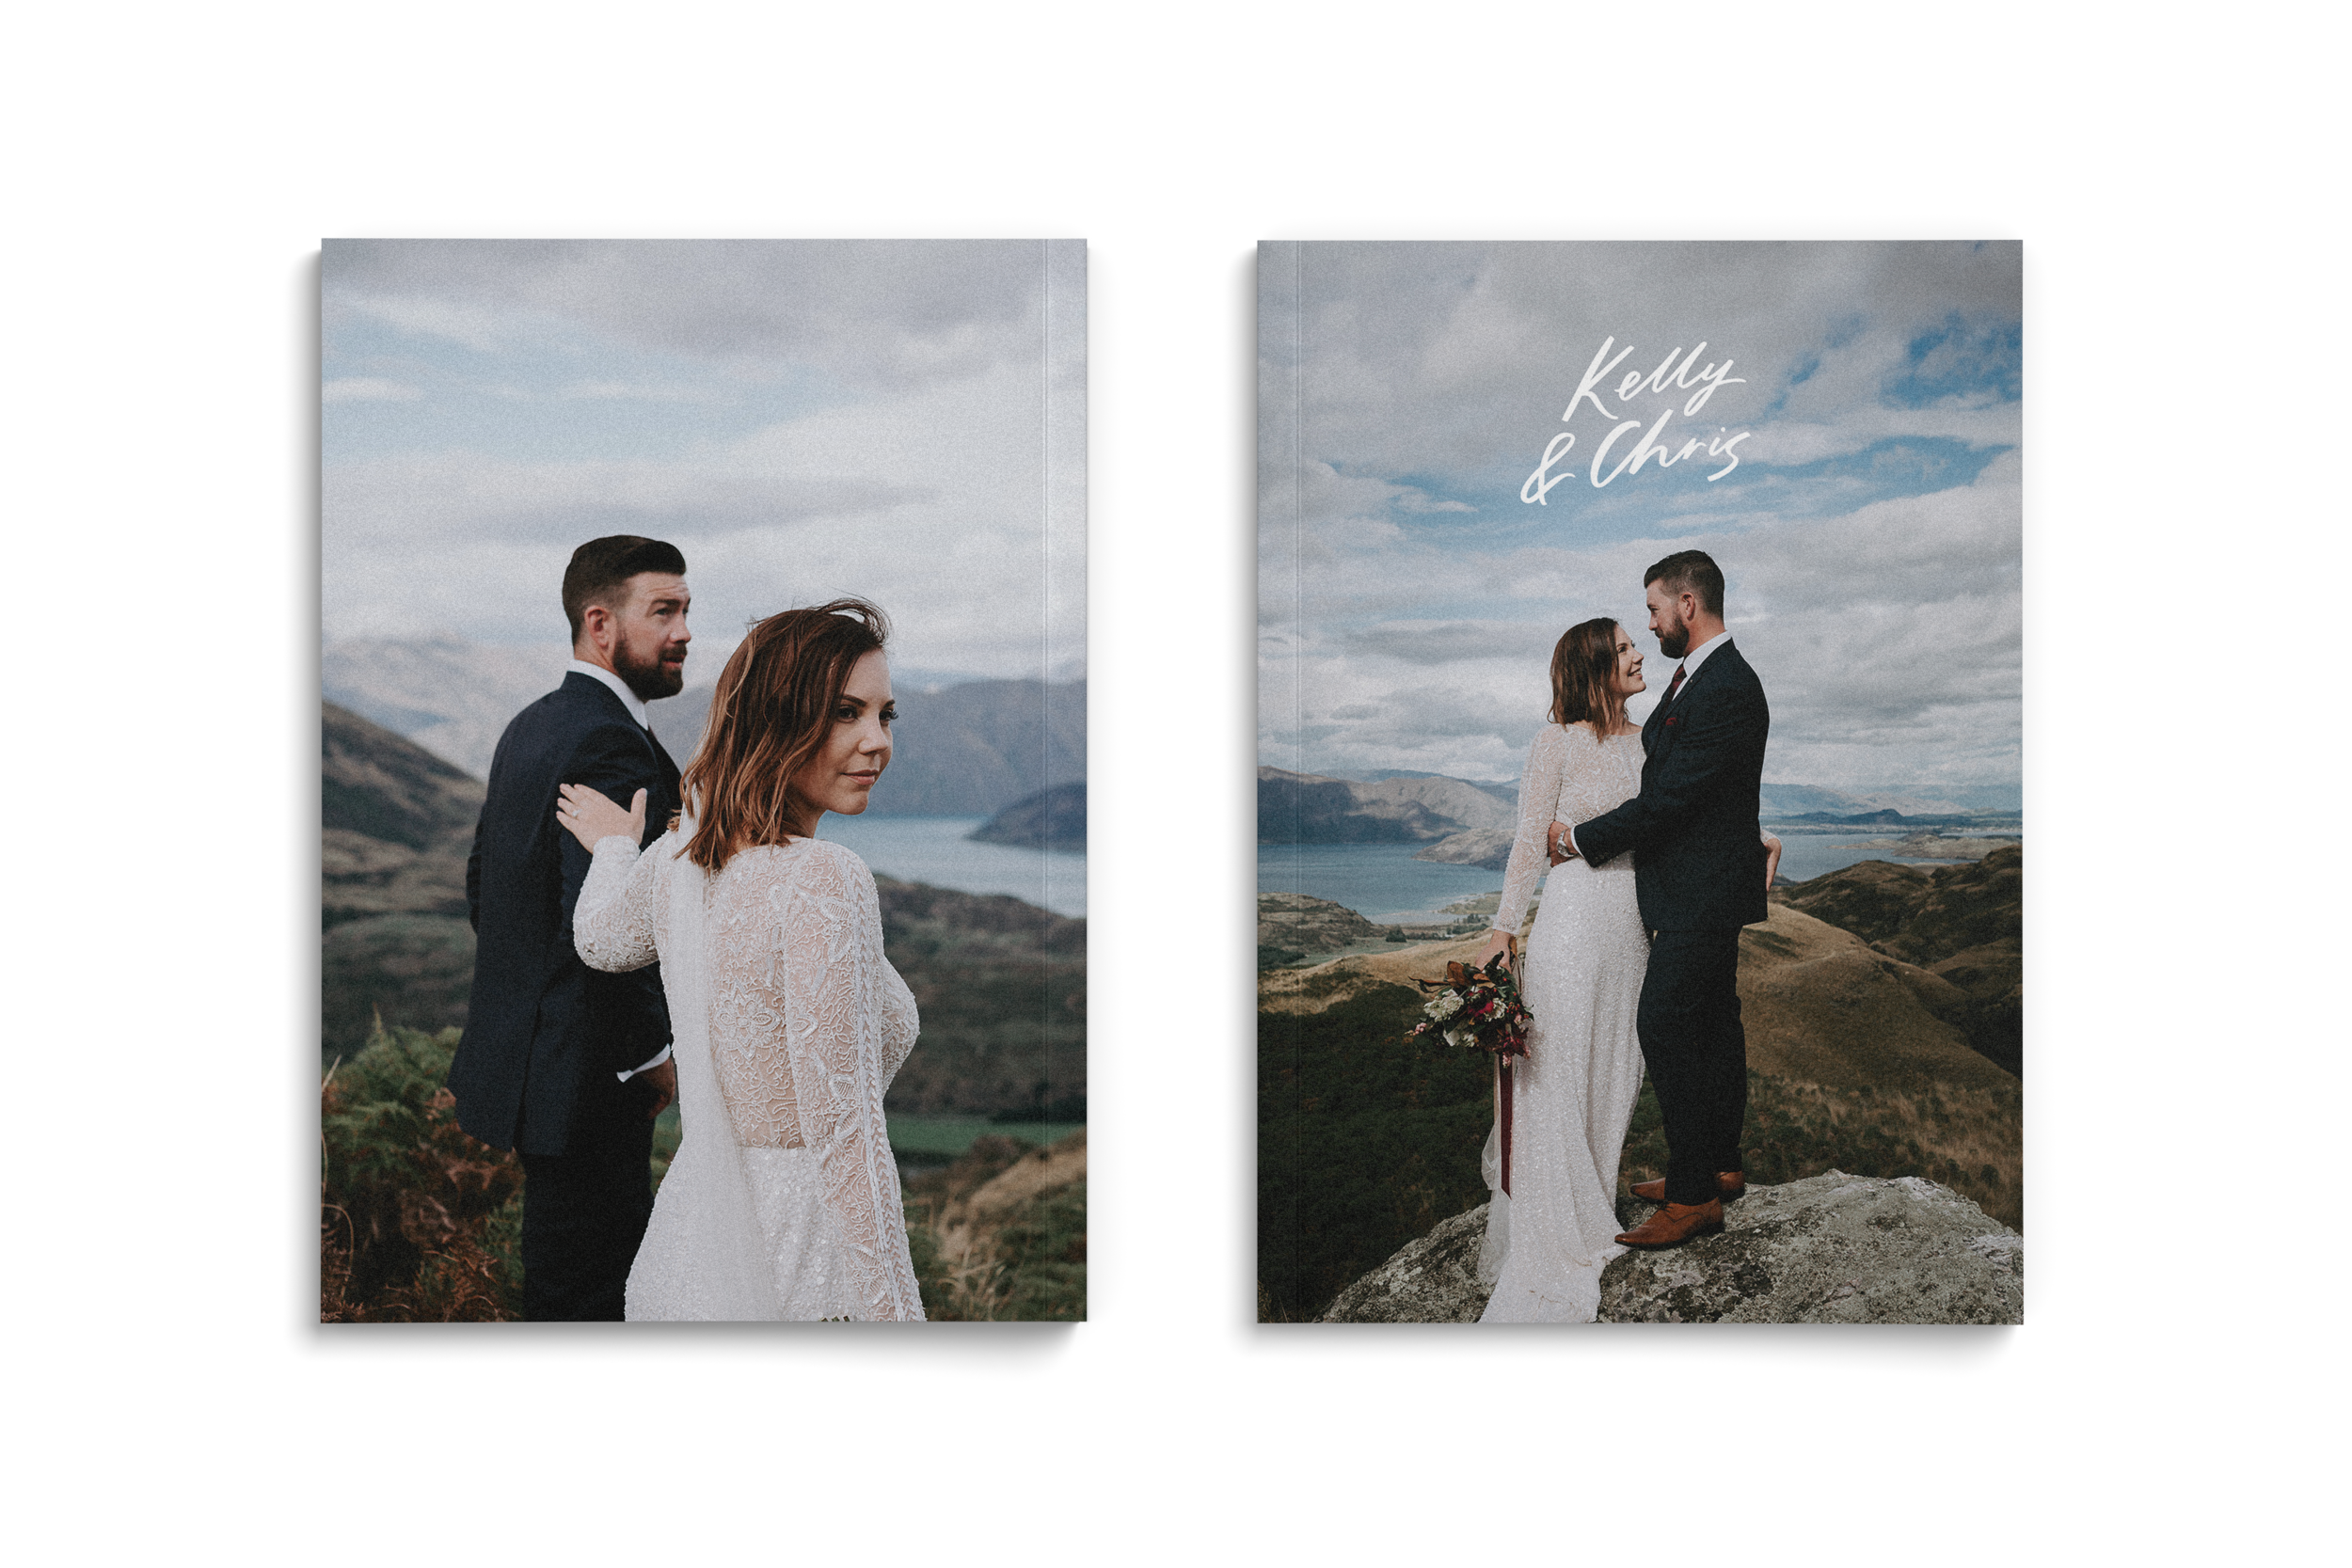 Kelly-Chris-Wedding-Zine-Cover-Front-Back-5.png